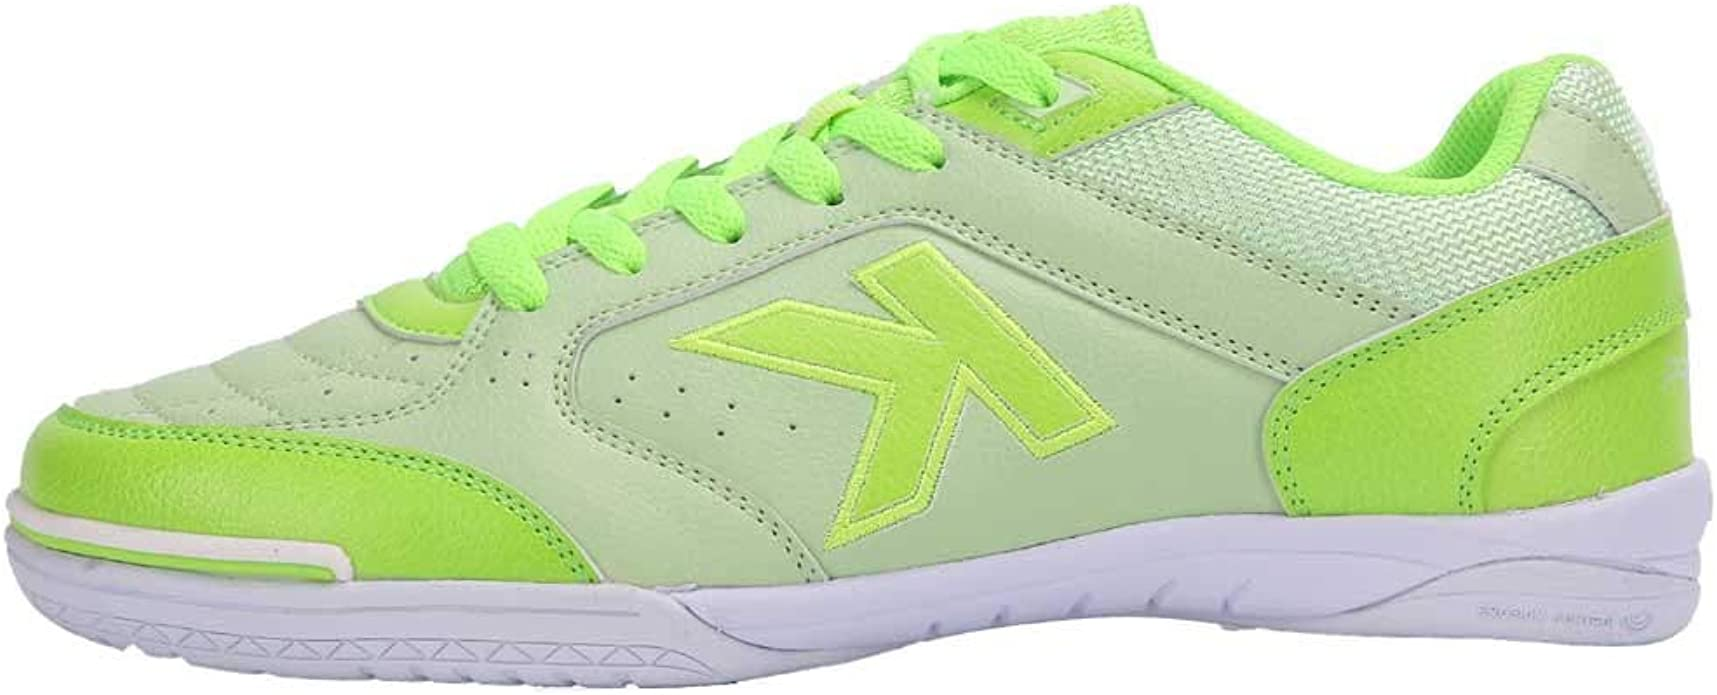 Kelme - Zapatillas Precision Elite 2.0: Amazon.es: Zapatos y complementos